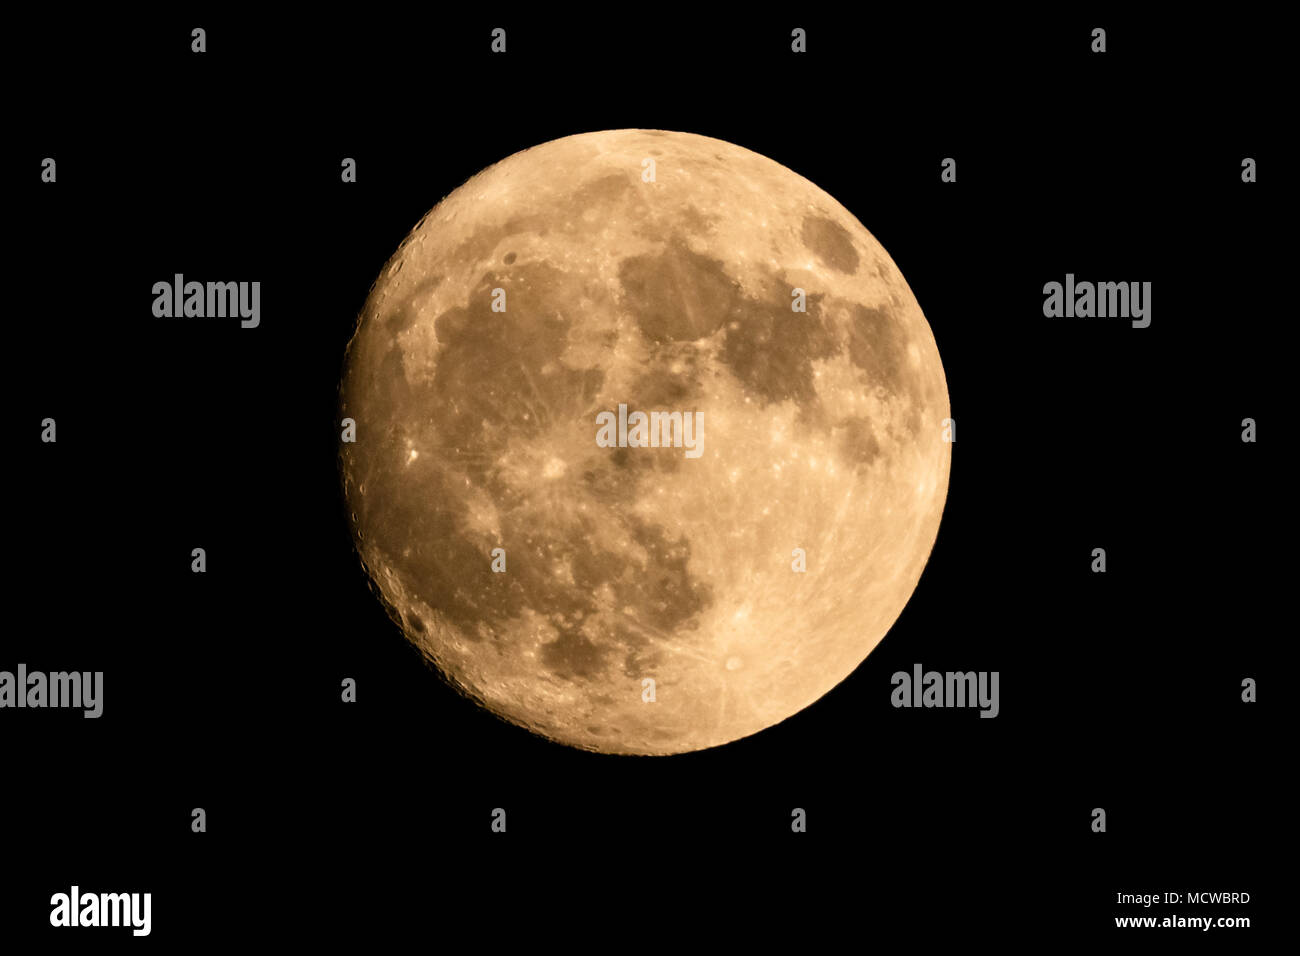 Closeup of a large shining full moon against dark background - Stock Image